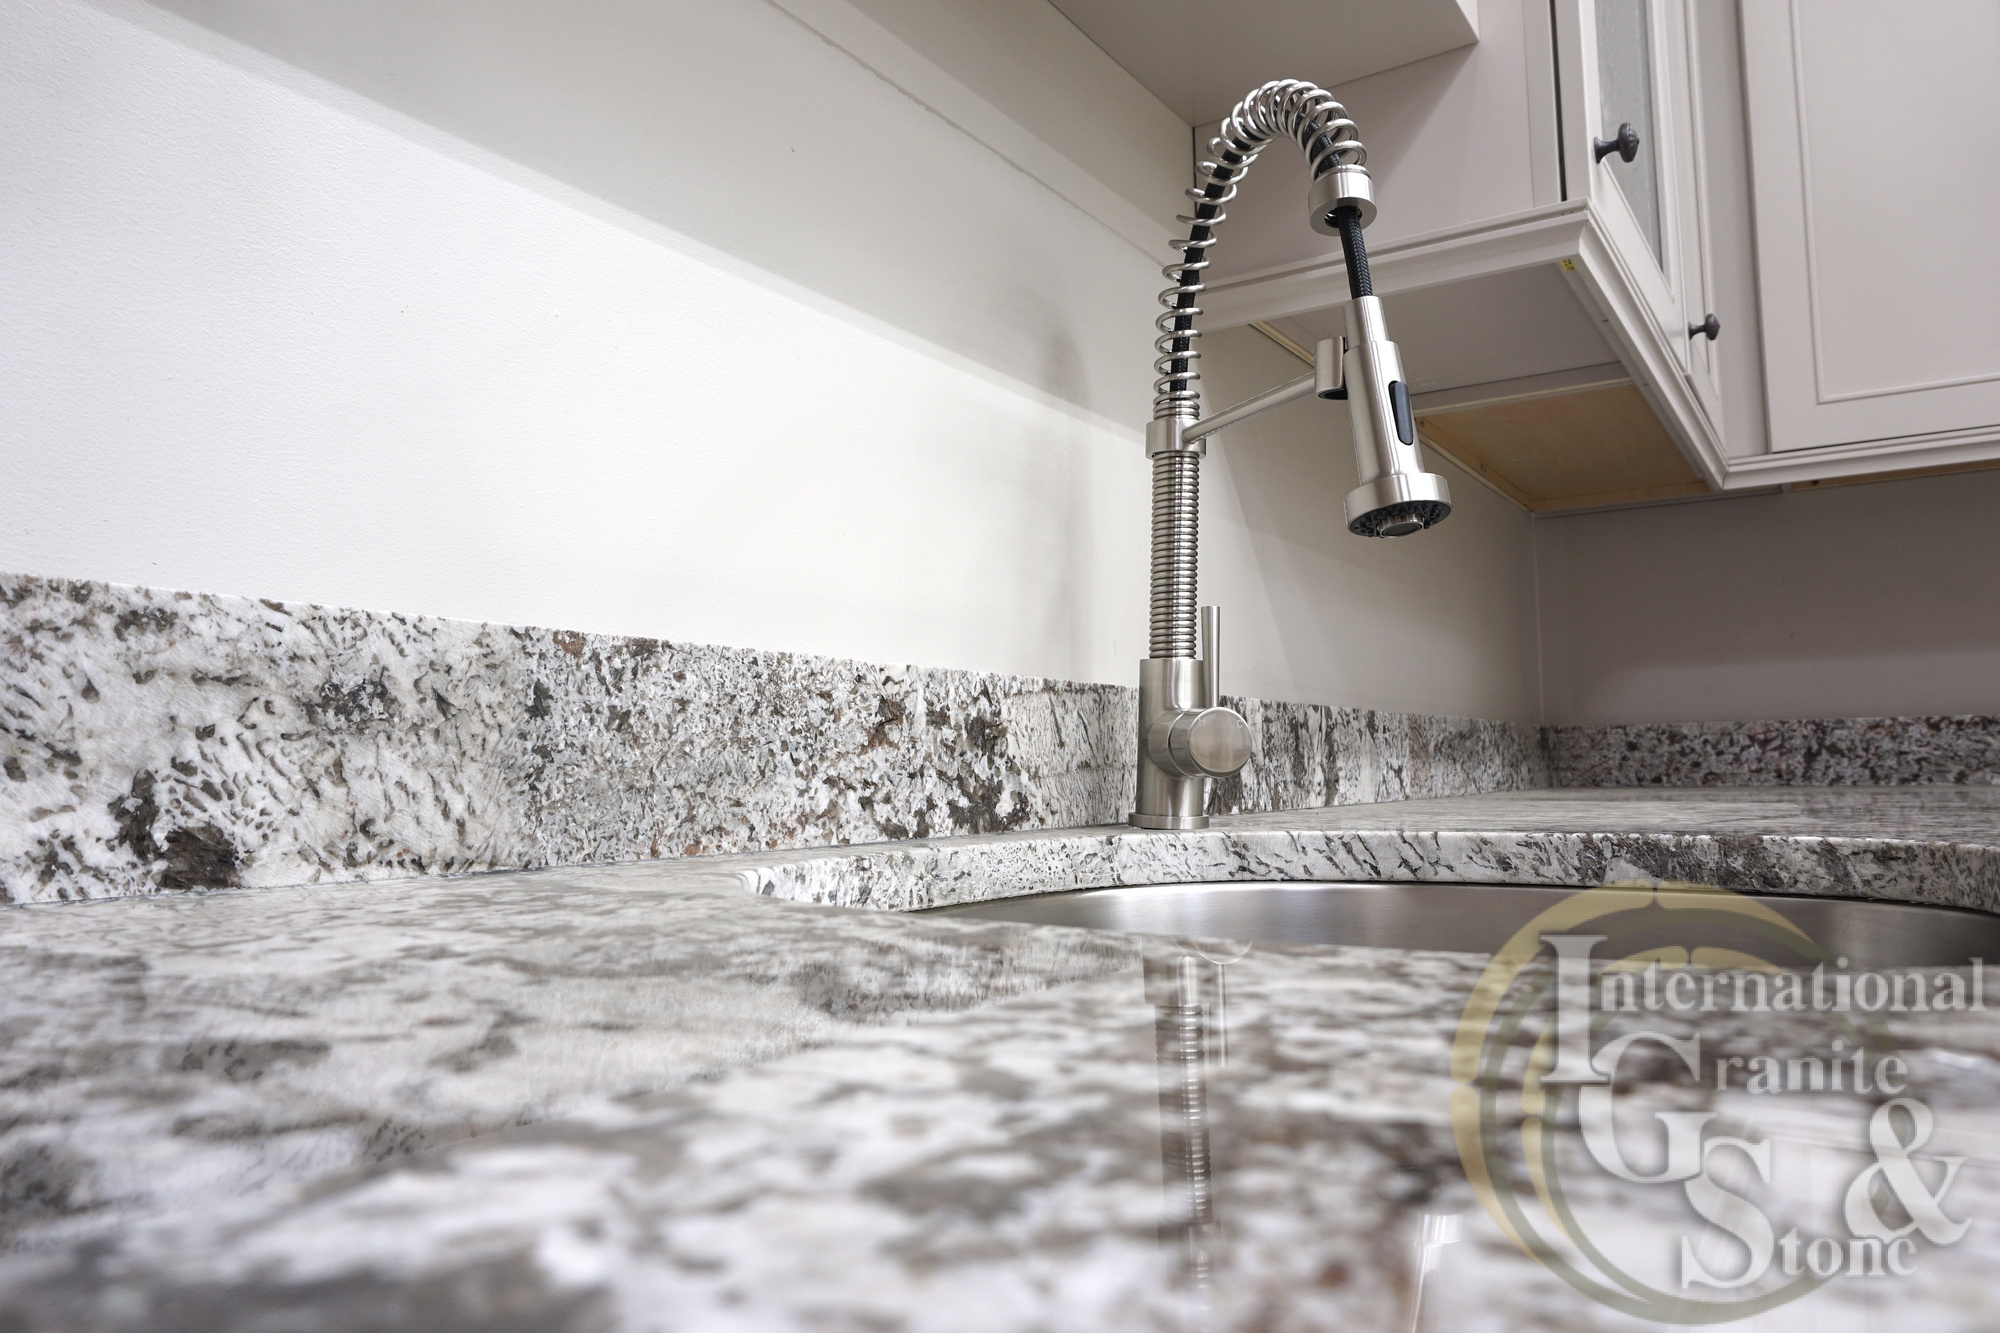 How Durable Are Granite Countertops?